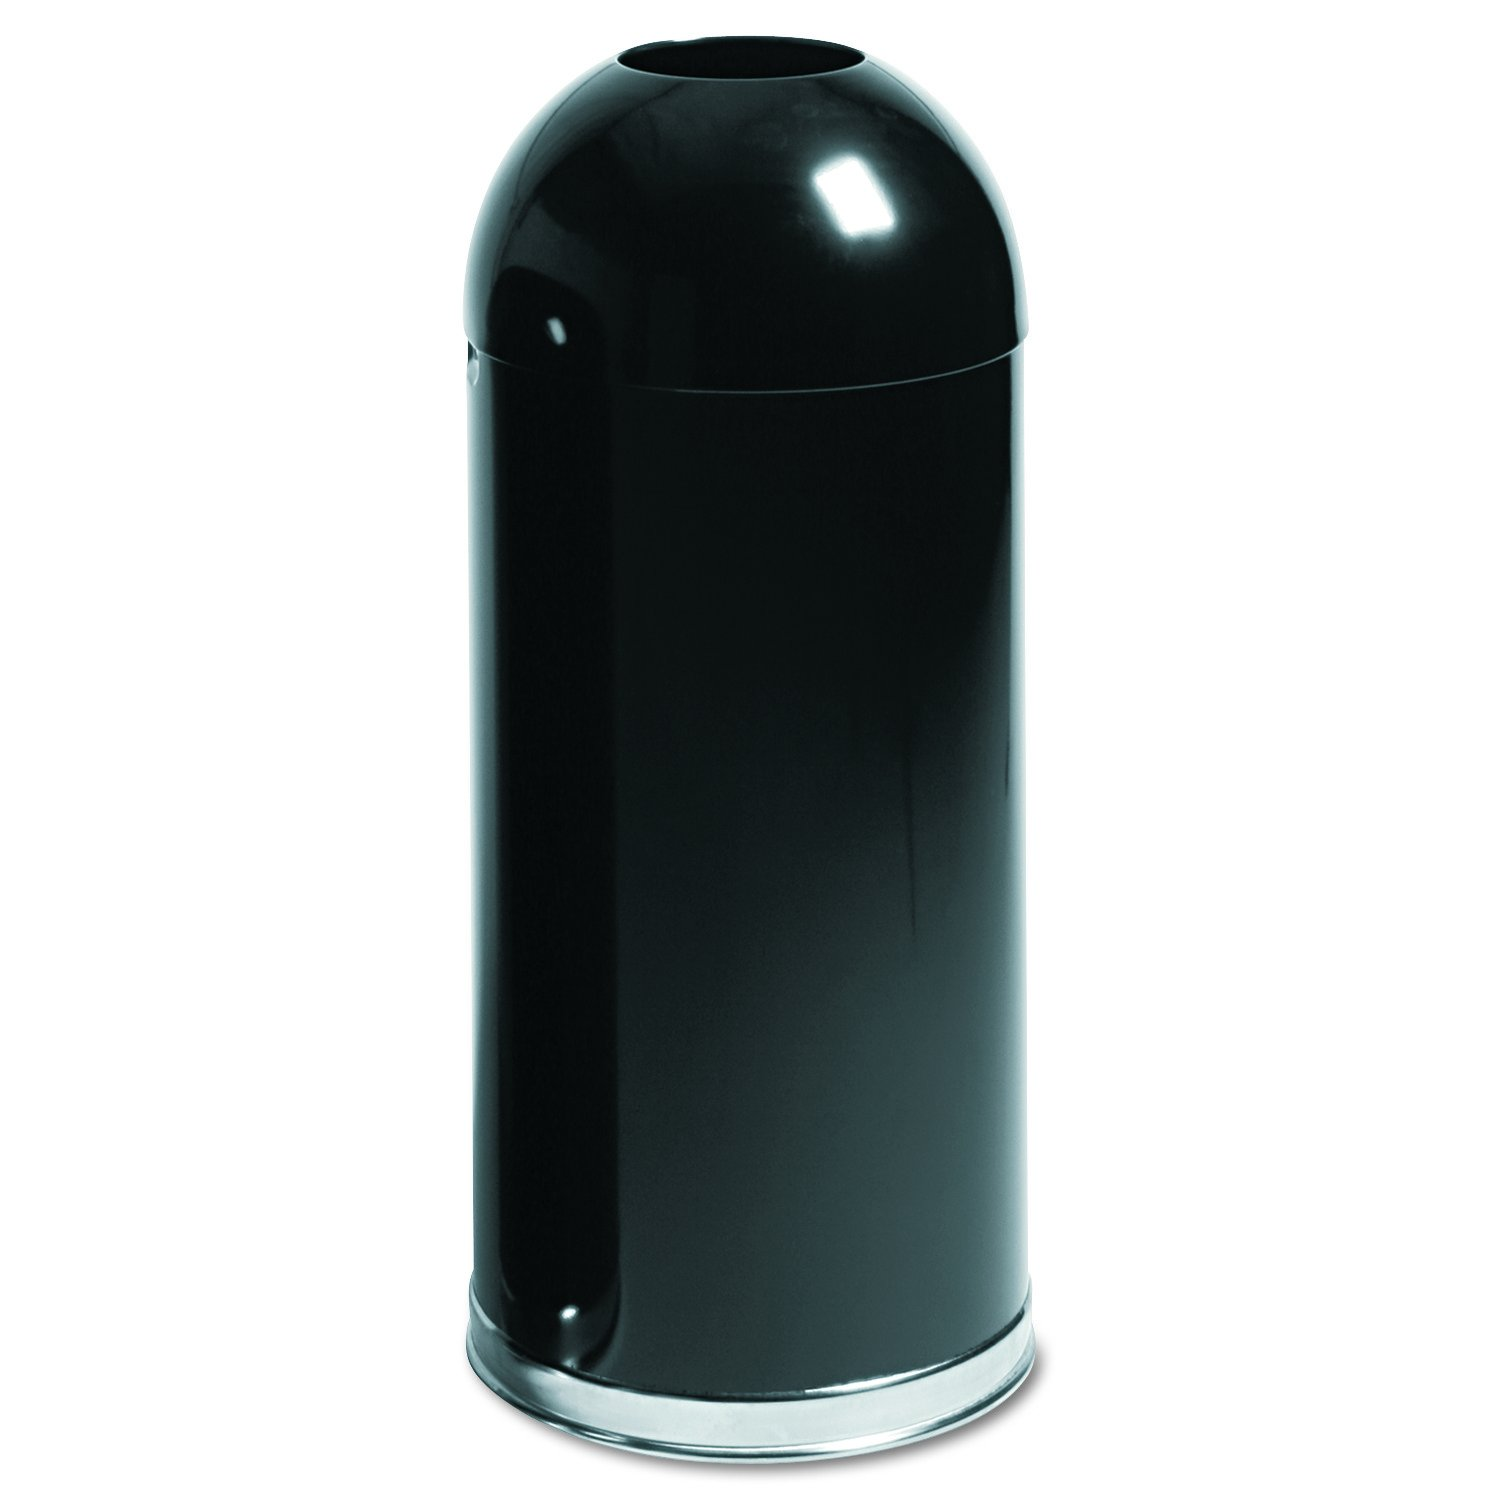 Rubbermaid Commercial Round Top Trash Can, 15 Gallon, Black, FGR1536EOTGLBK